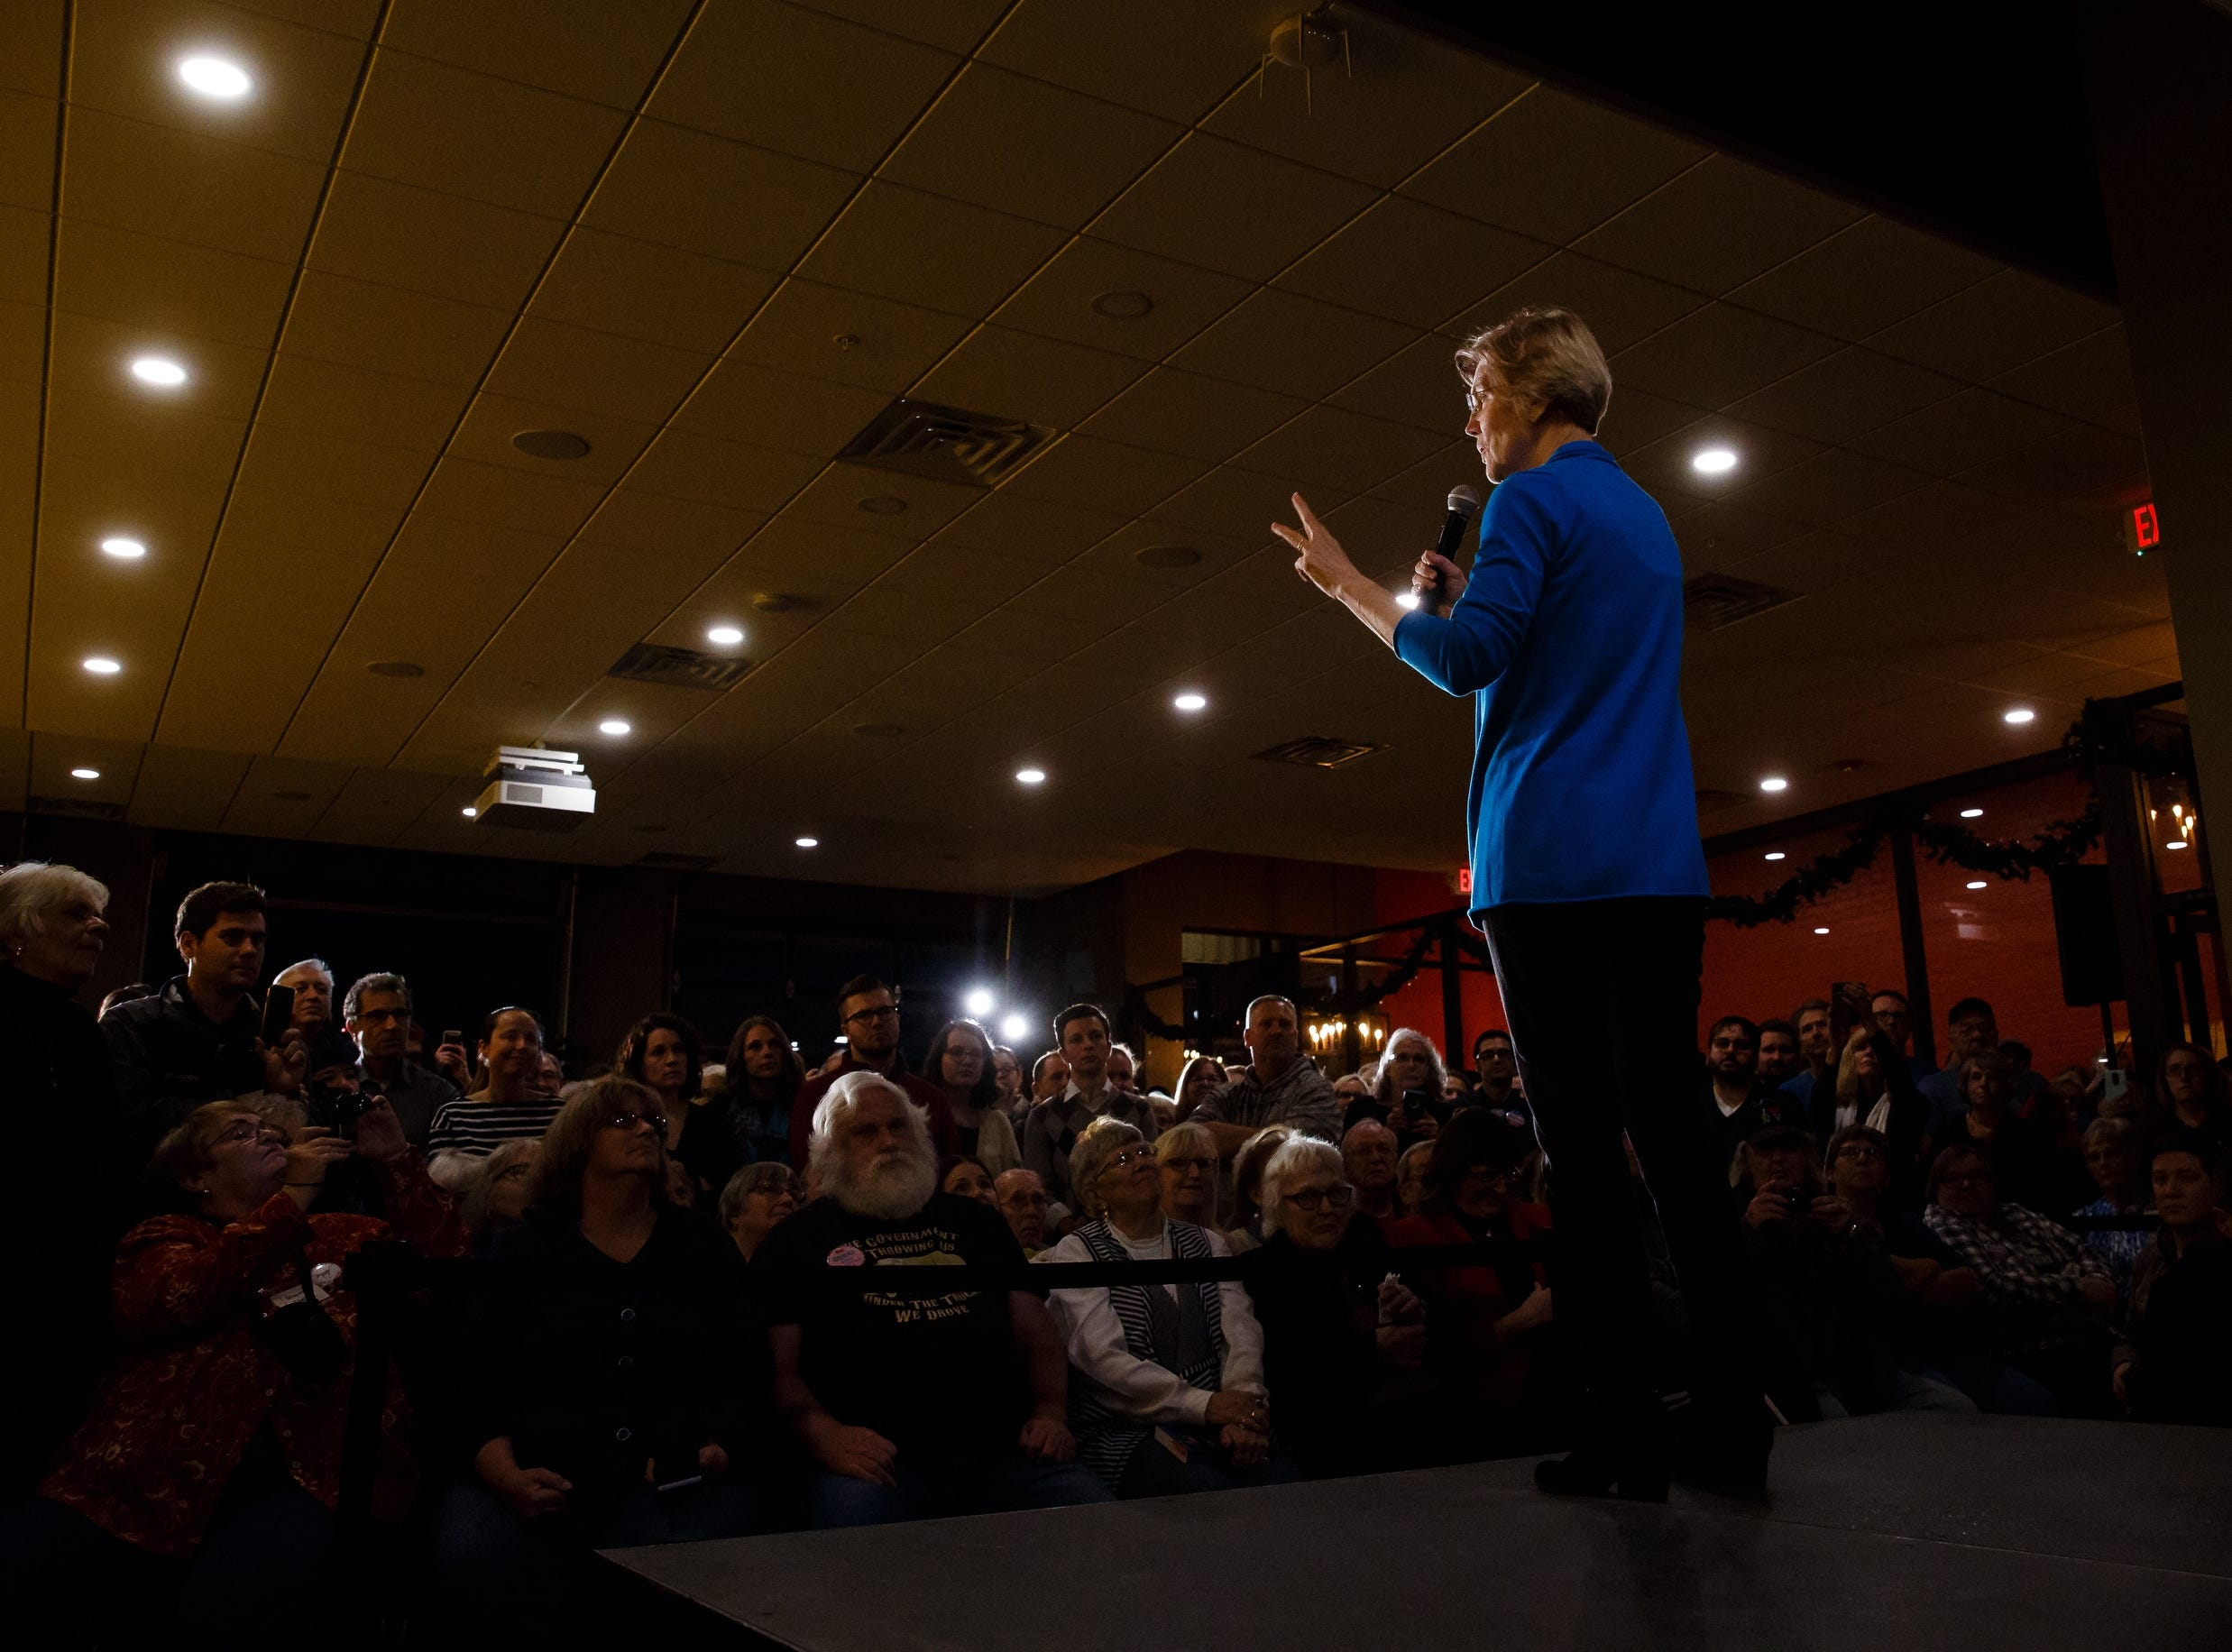 Elizabeth Warren speaks during an event on her first trip through Iowa as a possible 2020 presidential candidate on Friday, Jan. 4, 2019, in Council Bluffs.